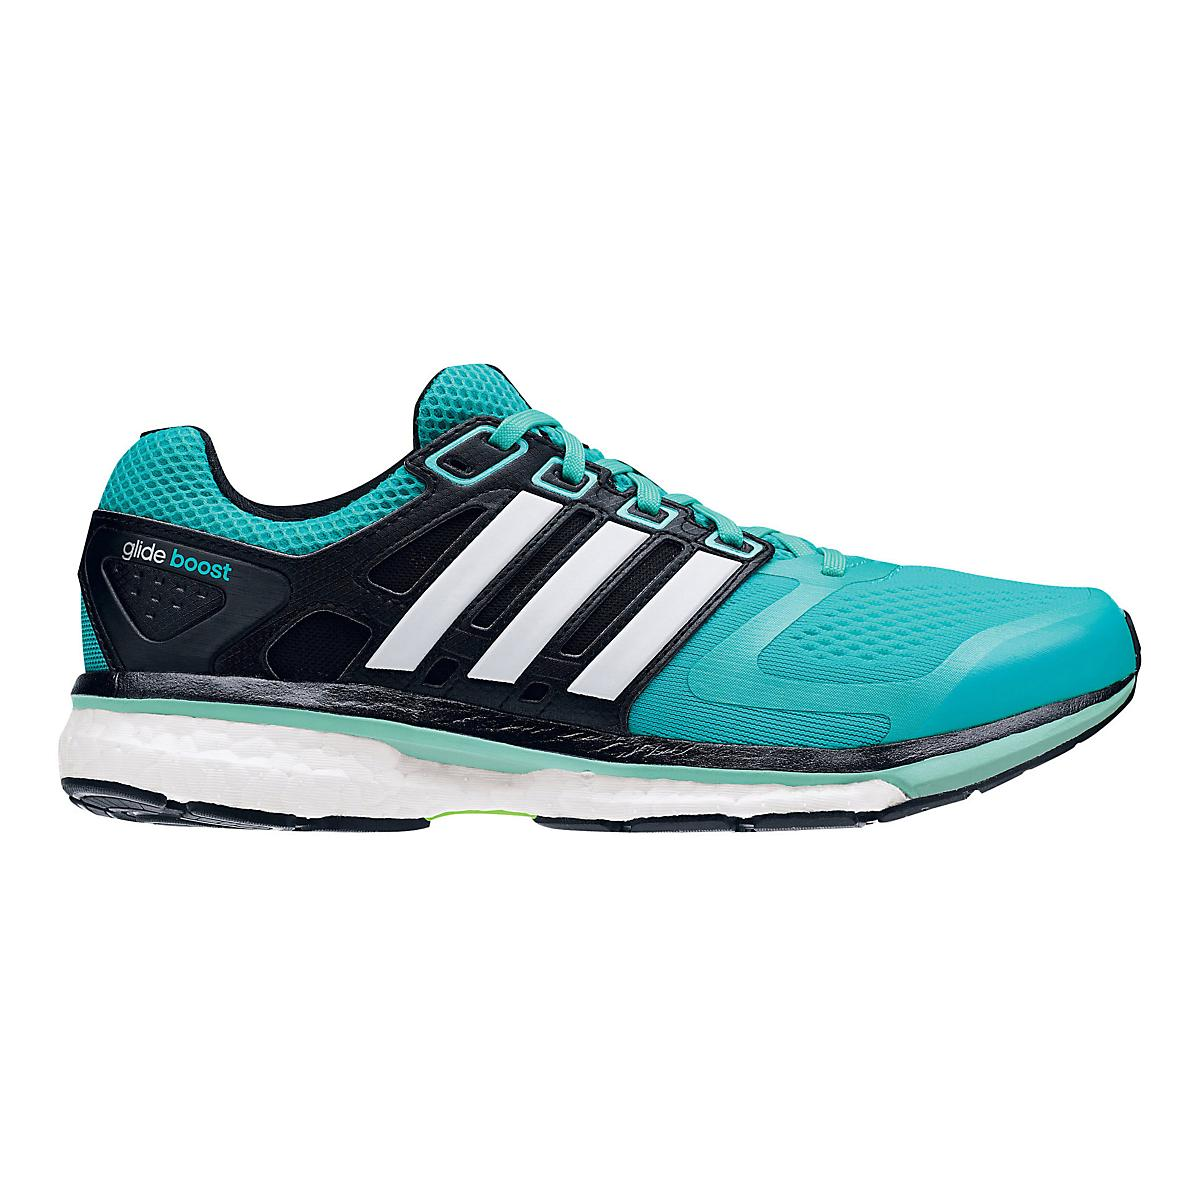 bc81aa89e4d72 Womens adidas Supernova Glide 6 Boost Running Shoe at Road Runner Sports